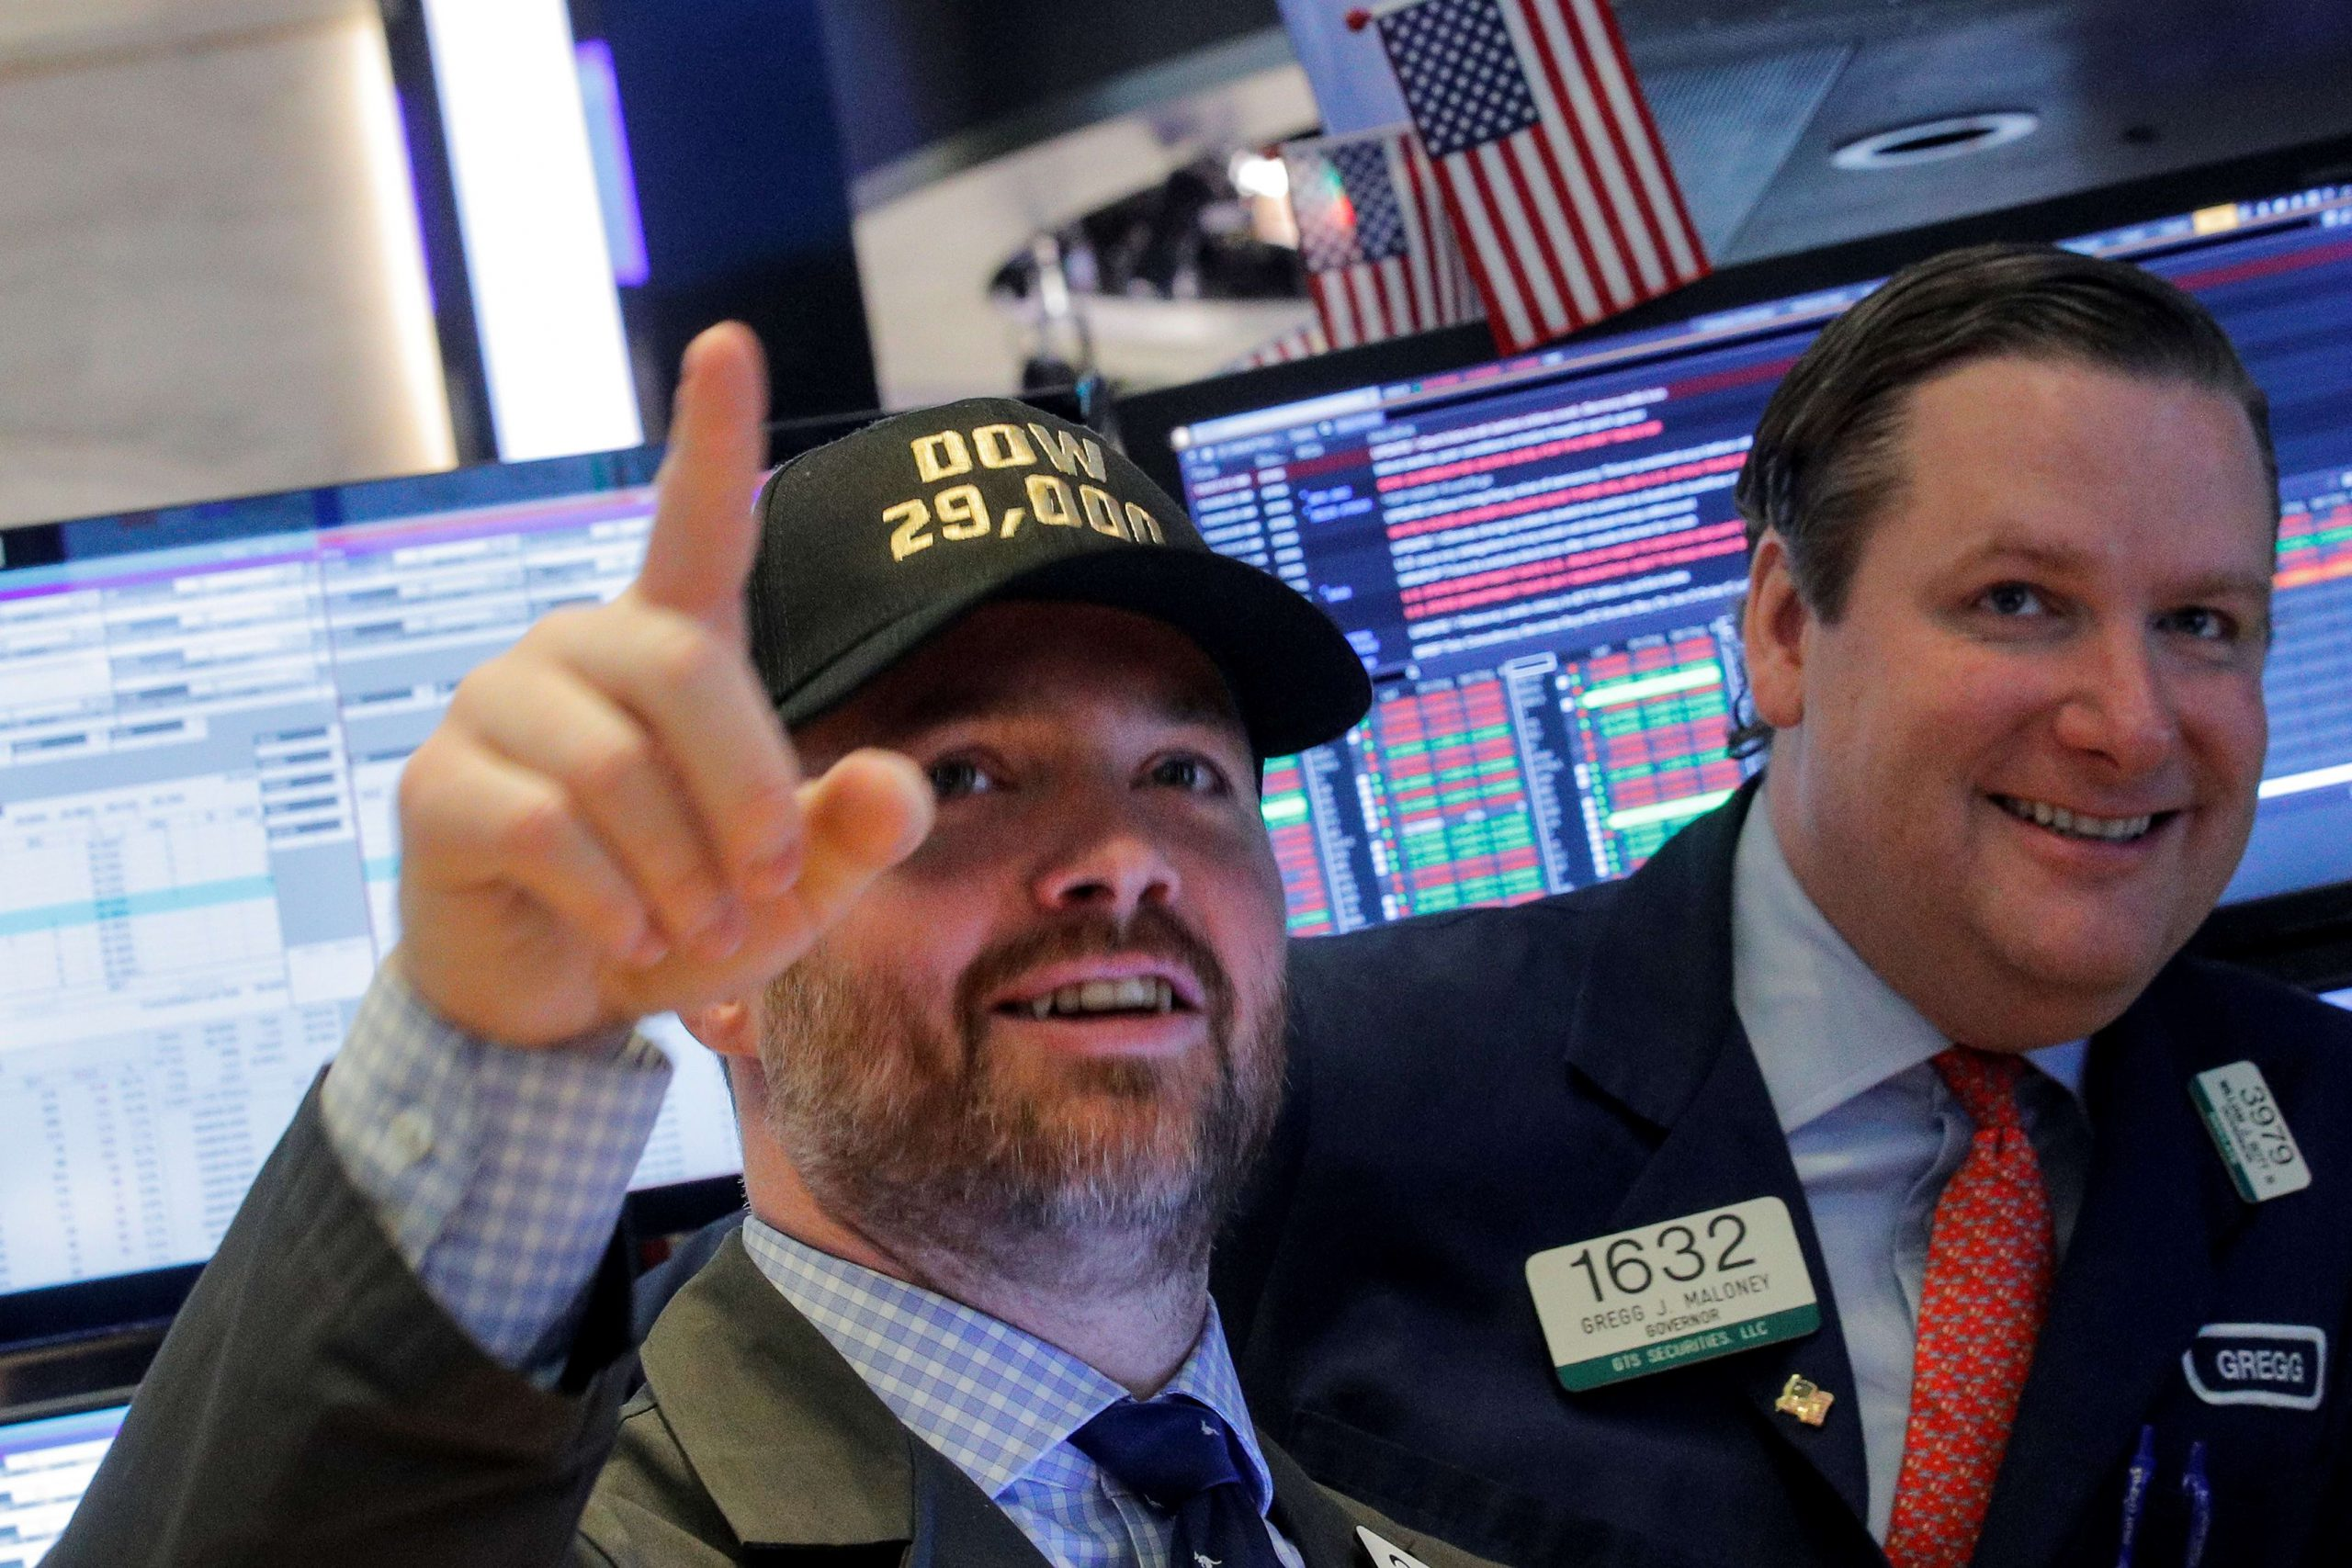 Stock market live updates: Dow futures up 140, Bed Bath & Beyond tanks